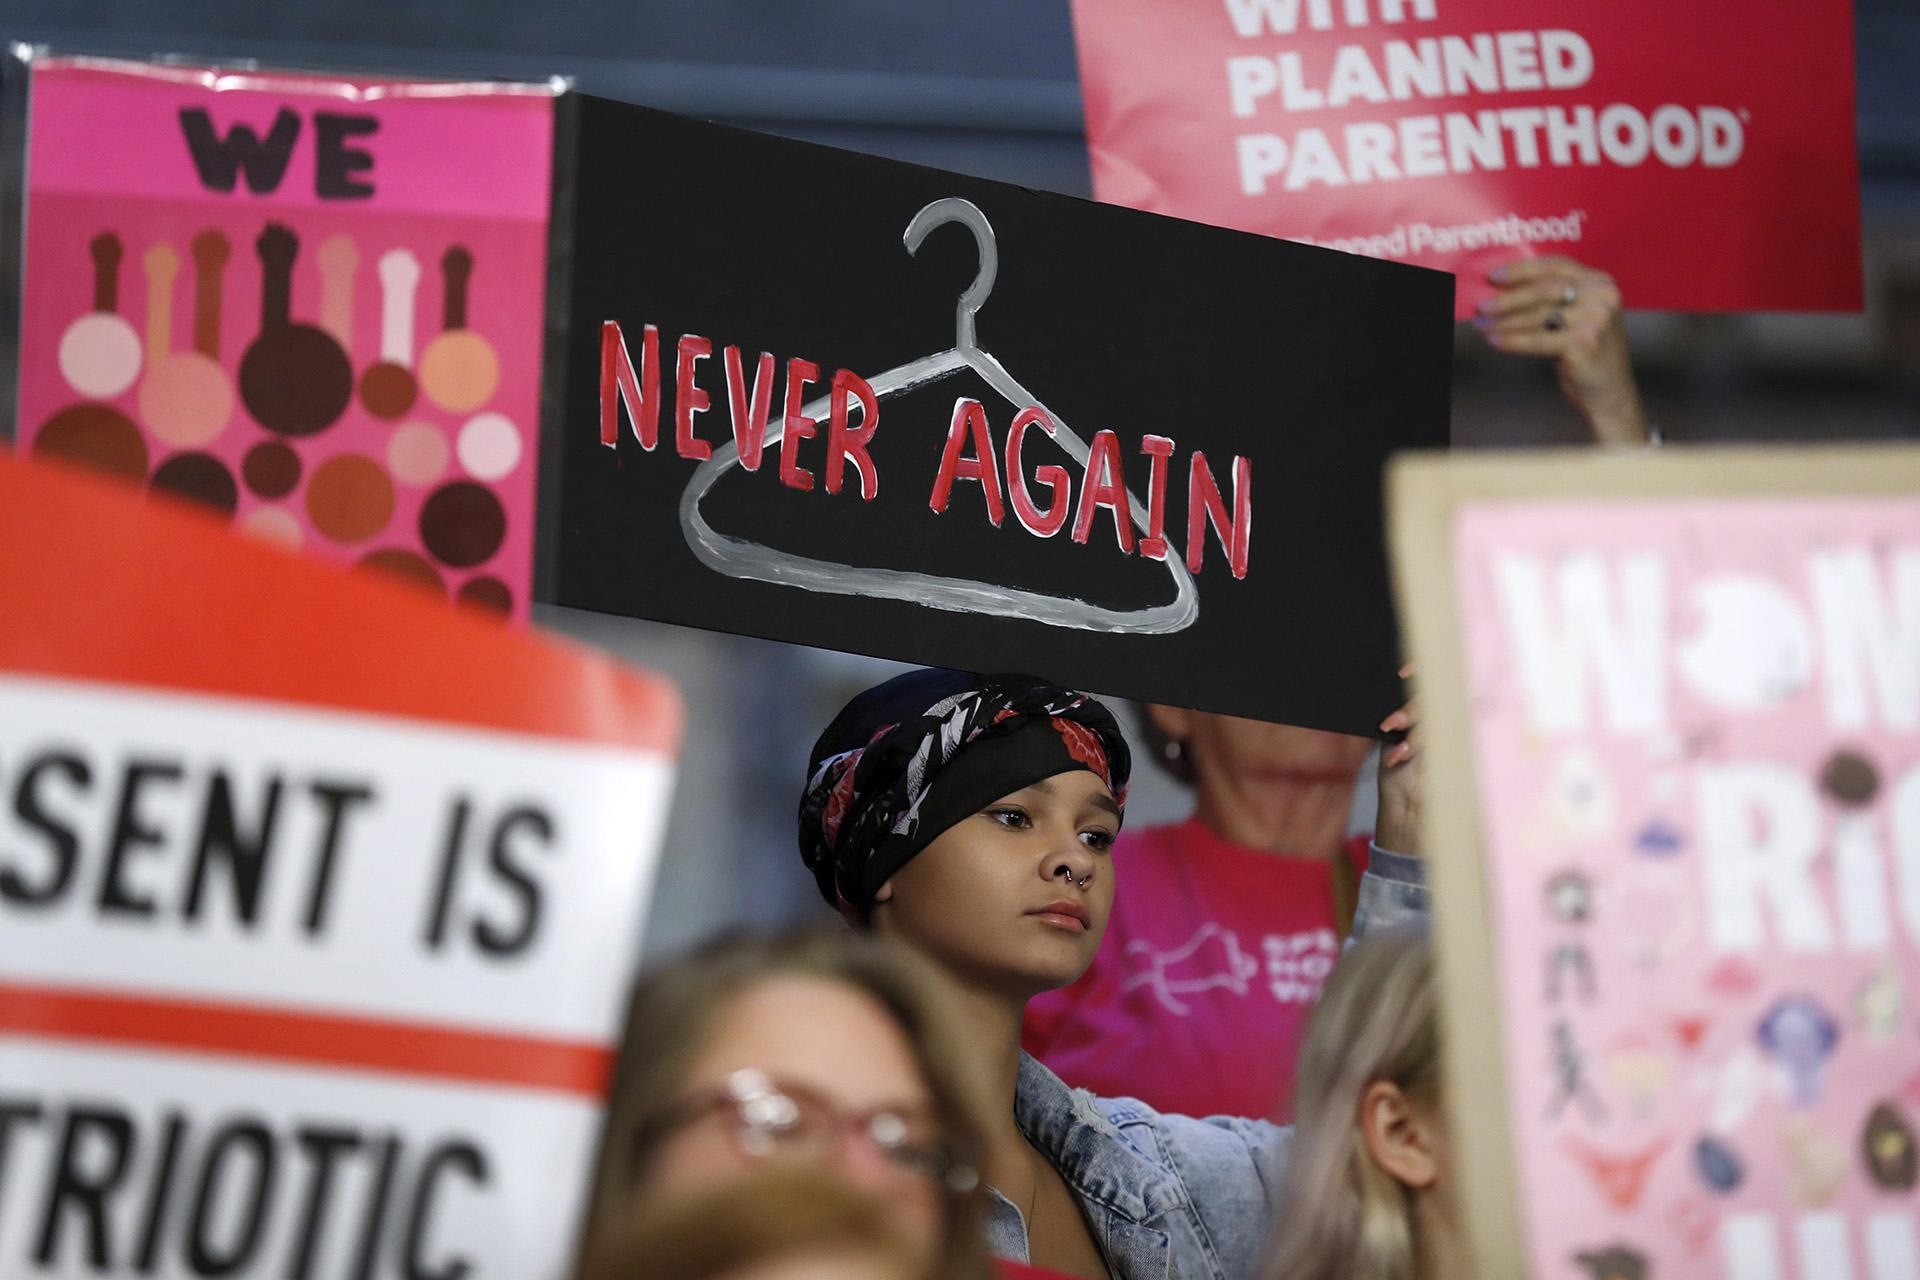 In this Tuesday, May 21, 2019 file photo, August Mulvihill, of Norwalk, Iowa, center, holds a sign depicting a wire clothes hanger during a rally at the Statehouse in Des Moines, Iowa, to protest recent abortion bans. (AP Photo / Charlie Neibergall)